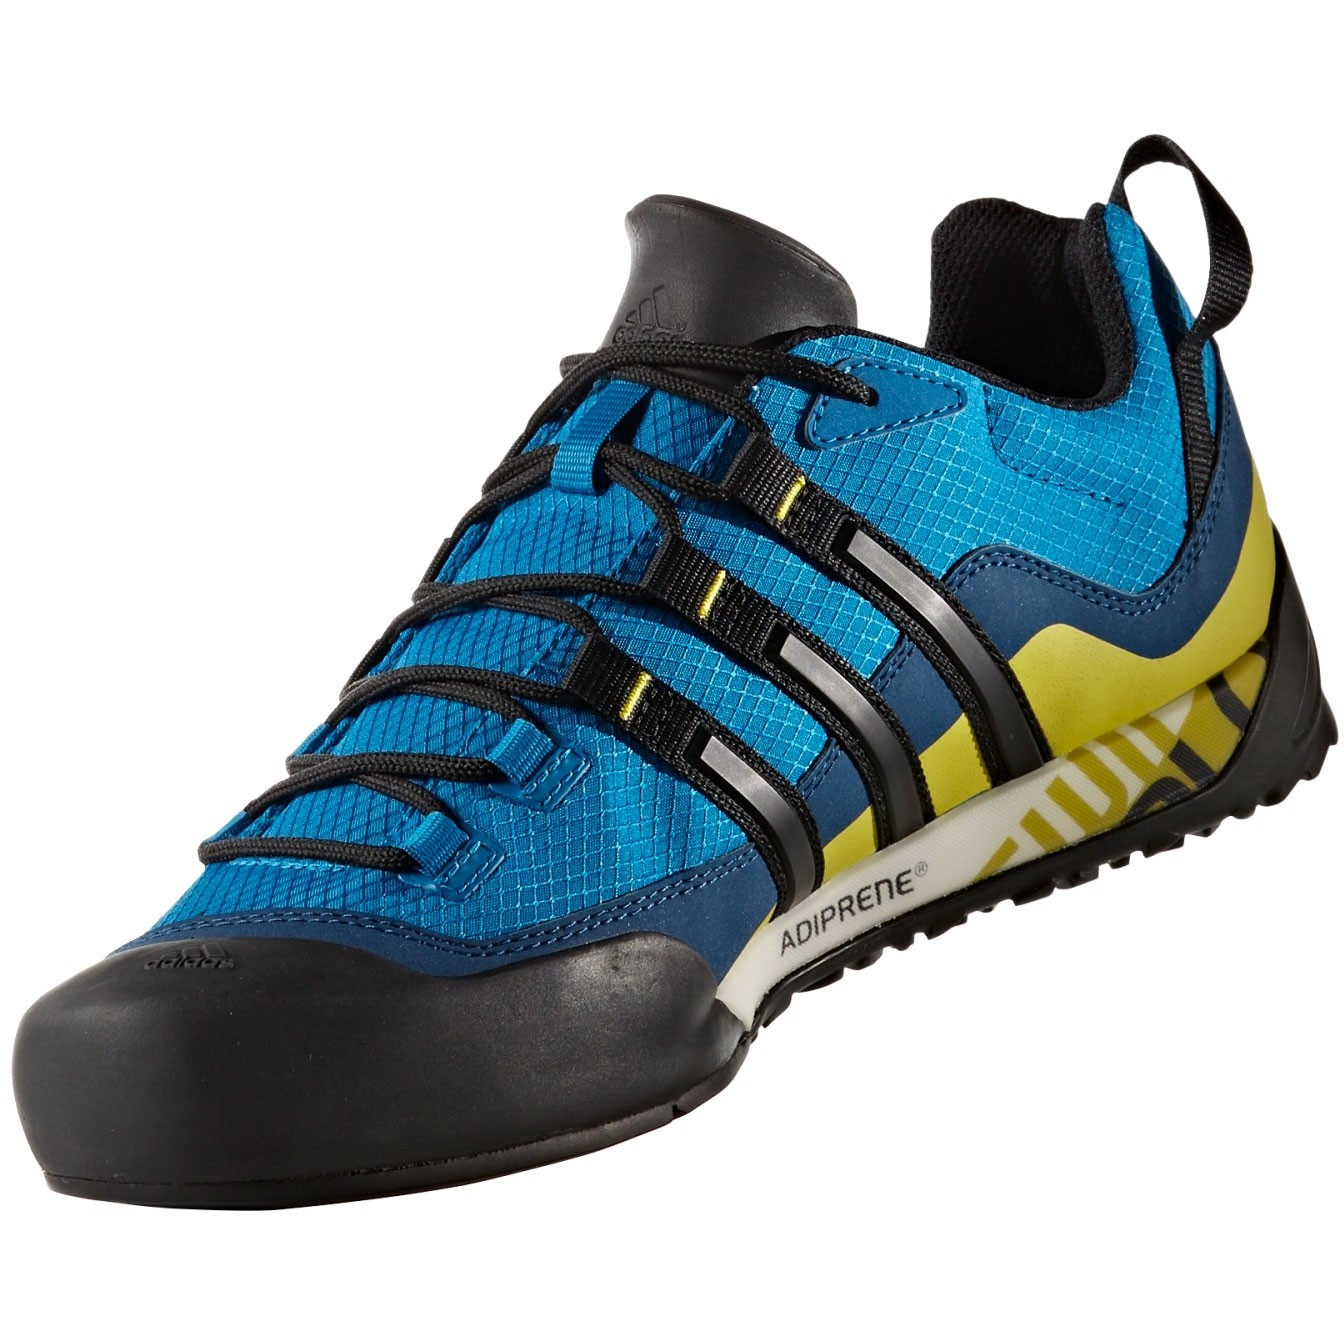 Adidas Terrex Swift Solo Approach Shoes - Blue/Yellow